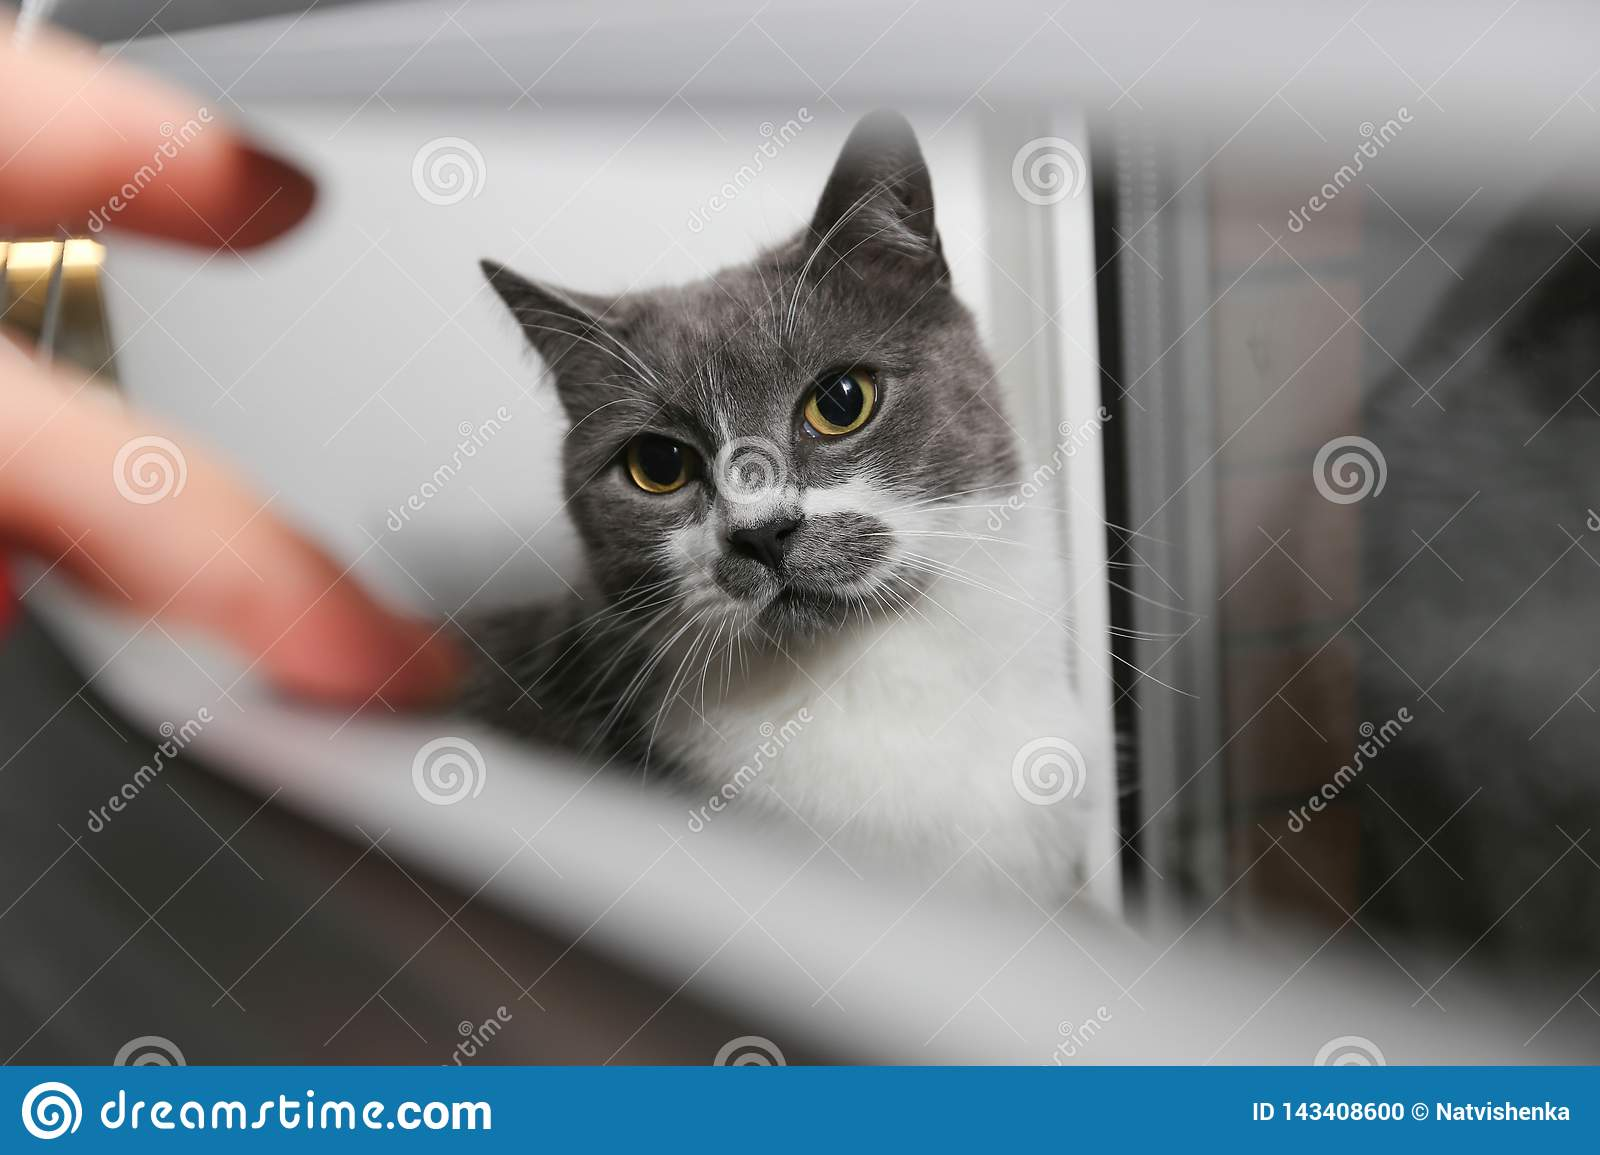 The Cat On The Window Is Hiding In The Blinds Cat In Conclusion Looks At His Own Life Stock Photo Image Of Exotic Eyes 143408600